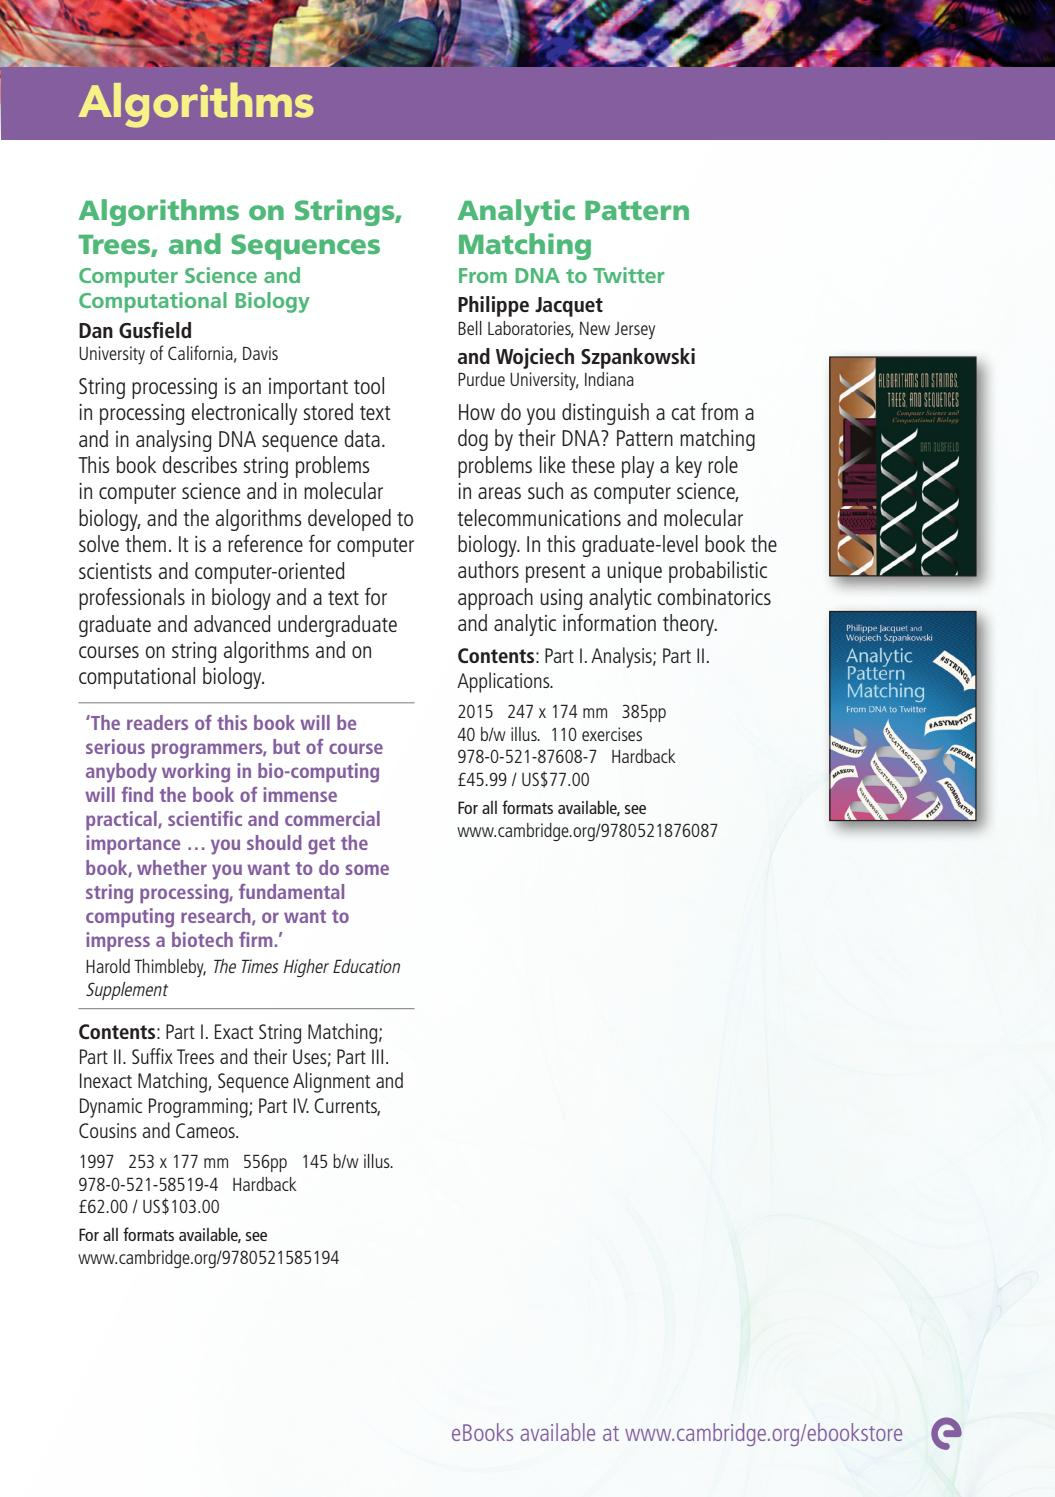 Computational systems biology 2017 by cambridge university press computational systems biology 2017 by cambridge university press issuu fandeluxe Choice Image